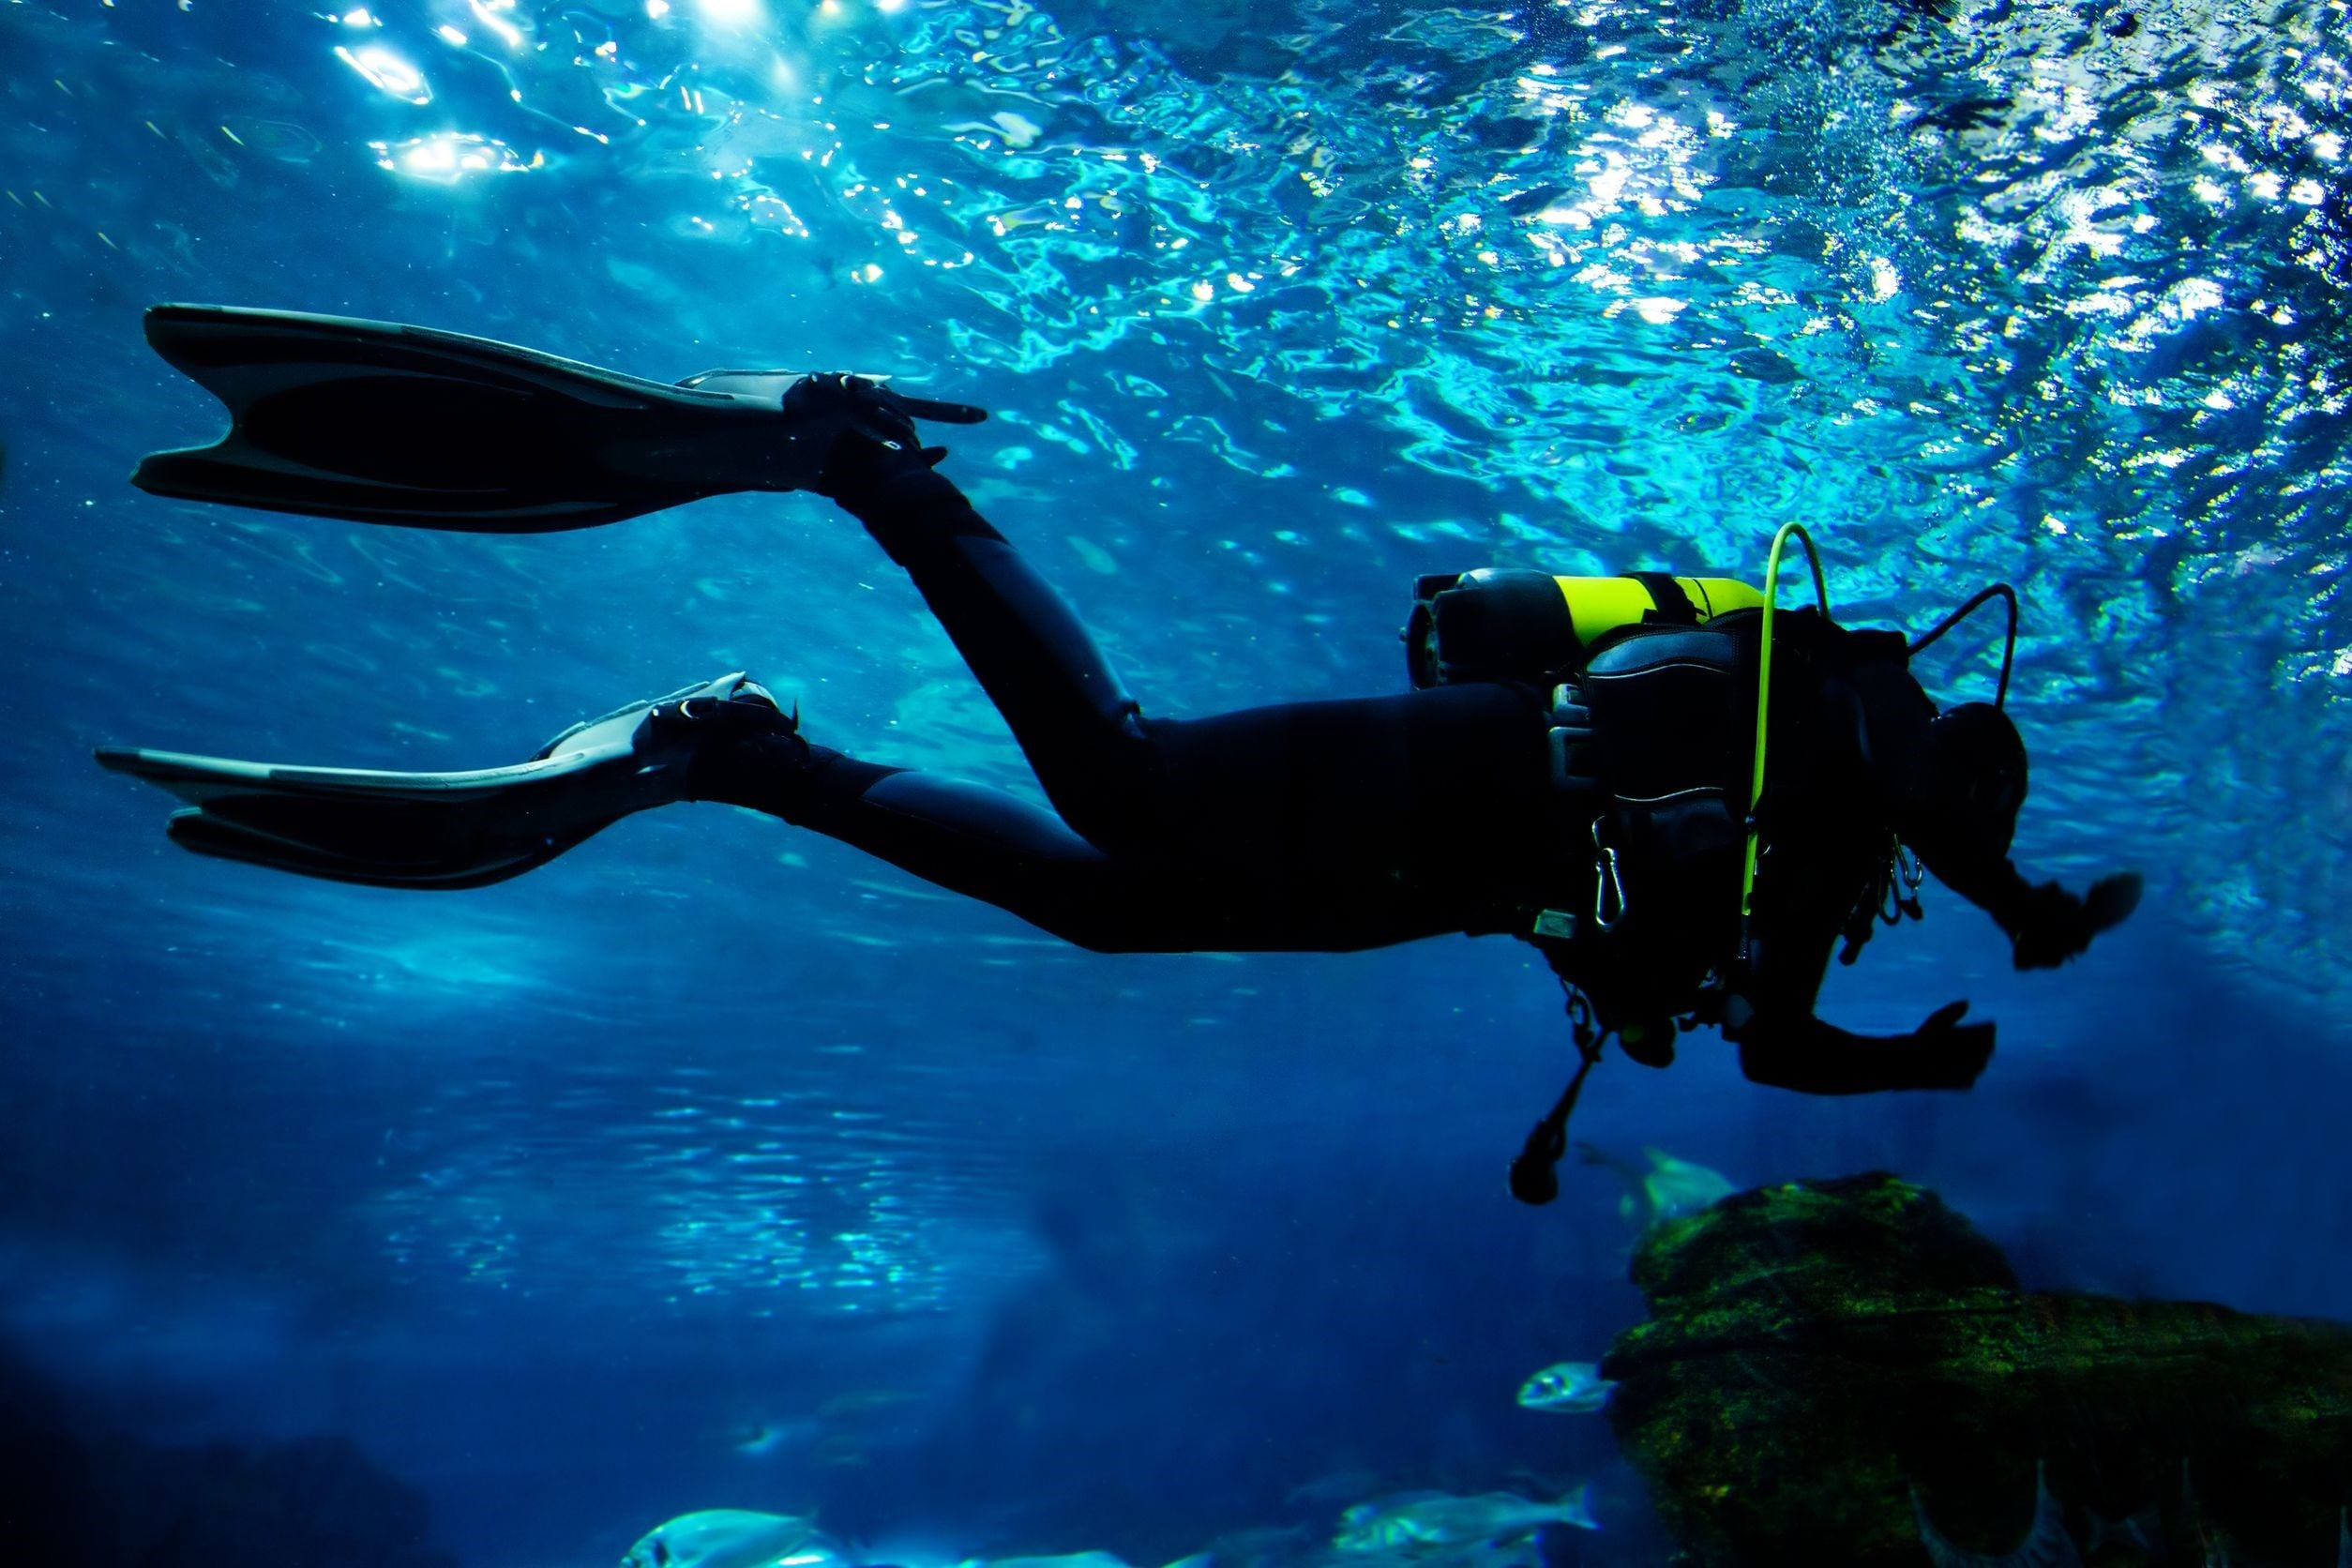 How Dangerous Is Scuba Diving? And What Can You Do If You're Hurt?